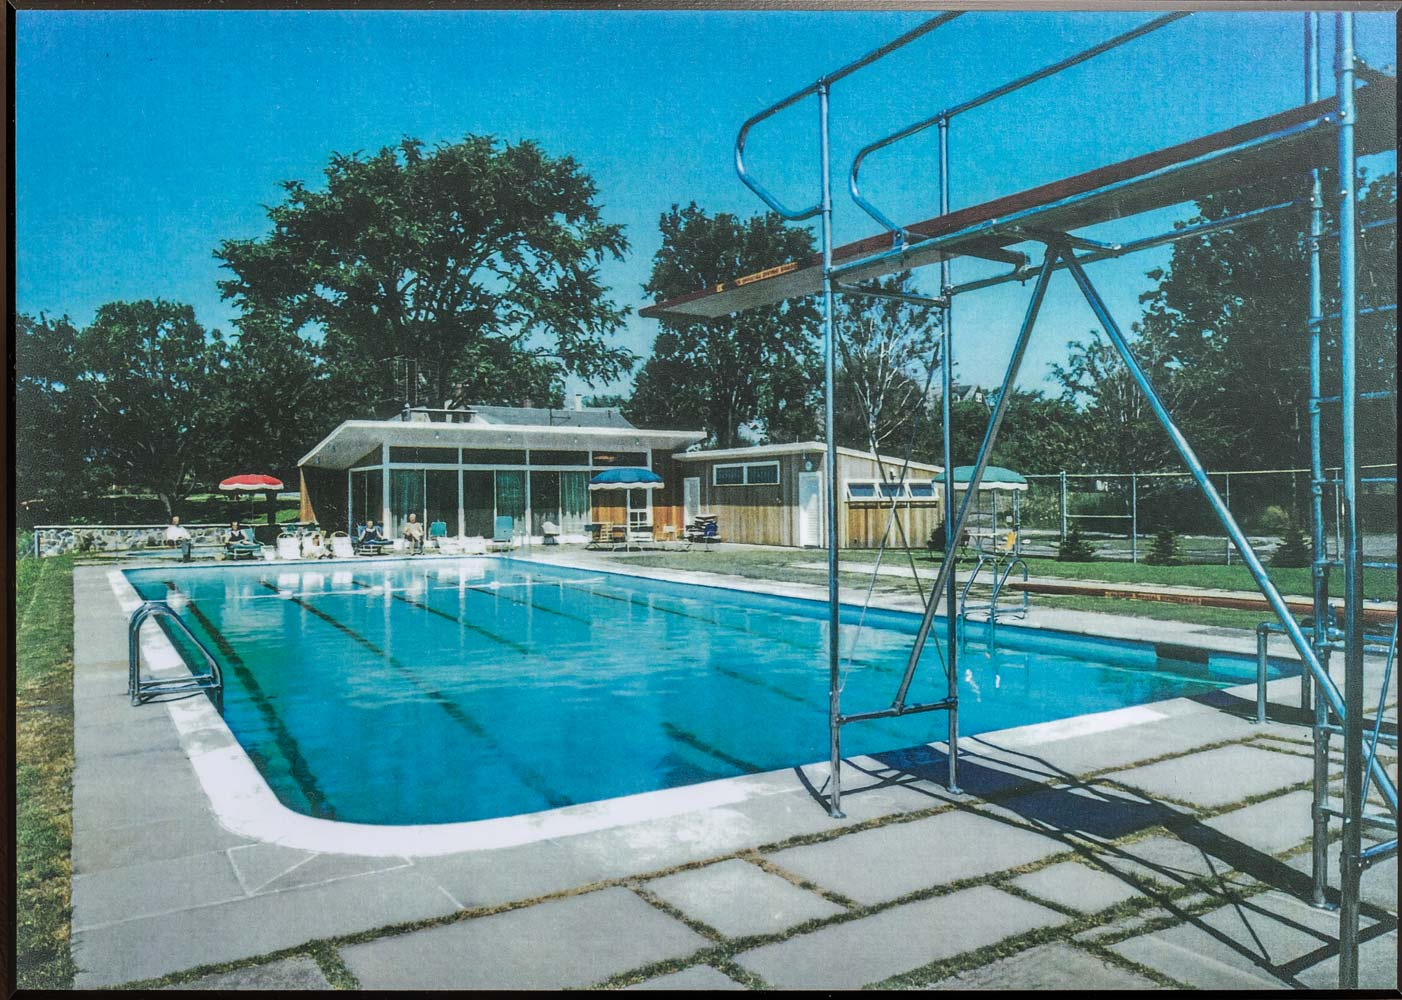 A vintage photograph provided by the Ethridges shows the pool and pool house original to the property.